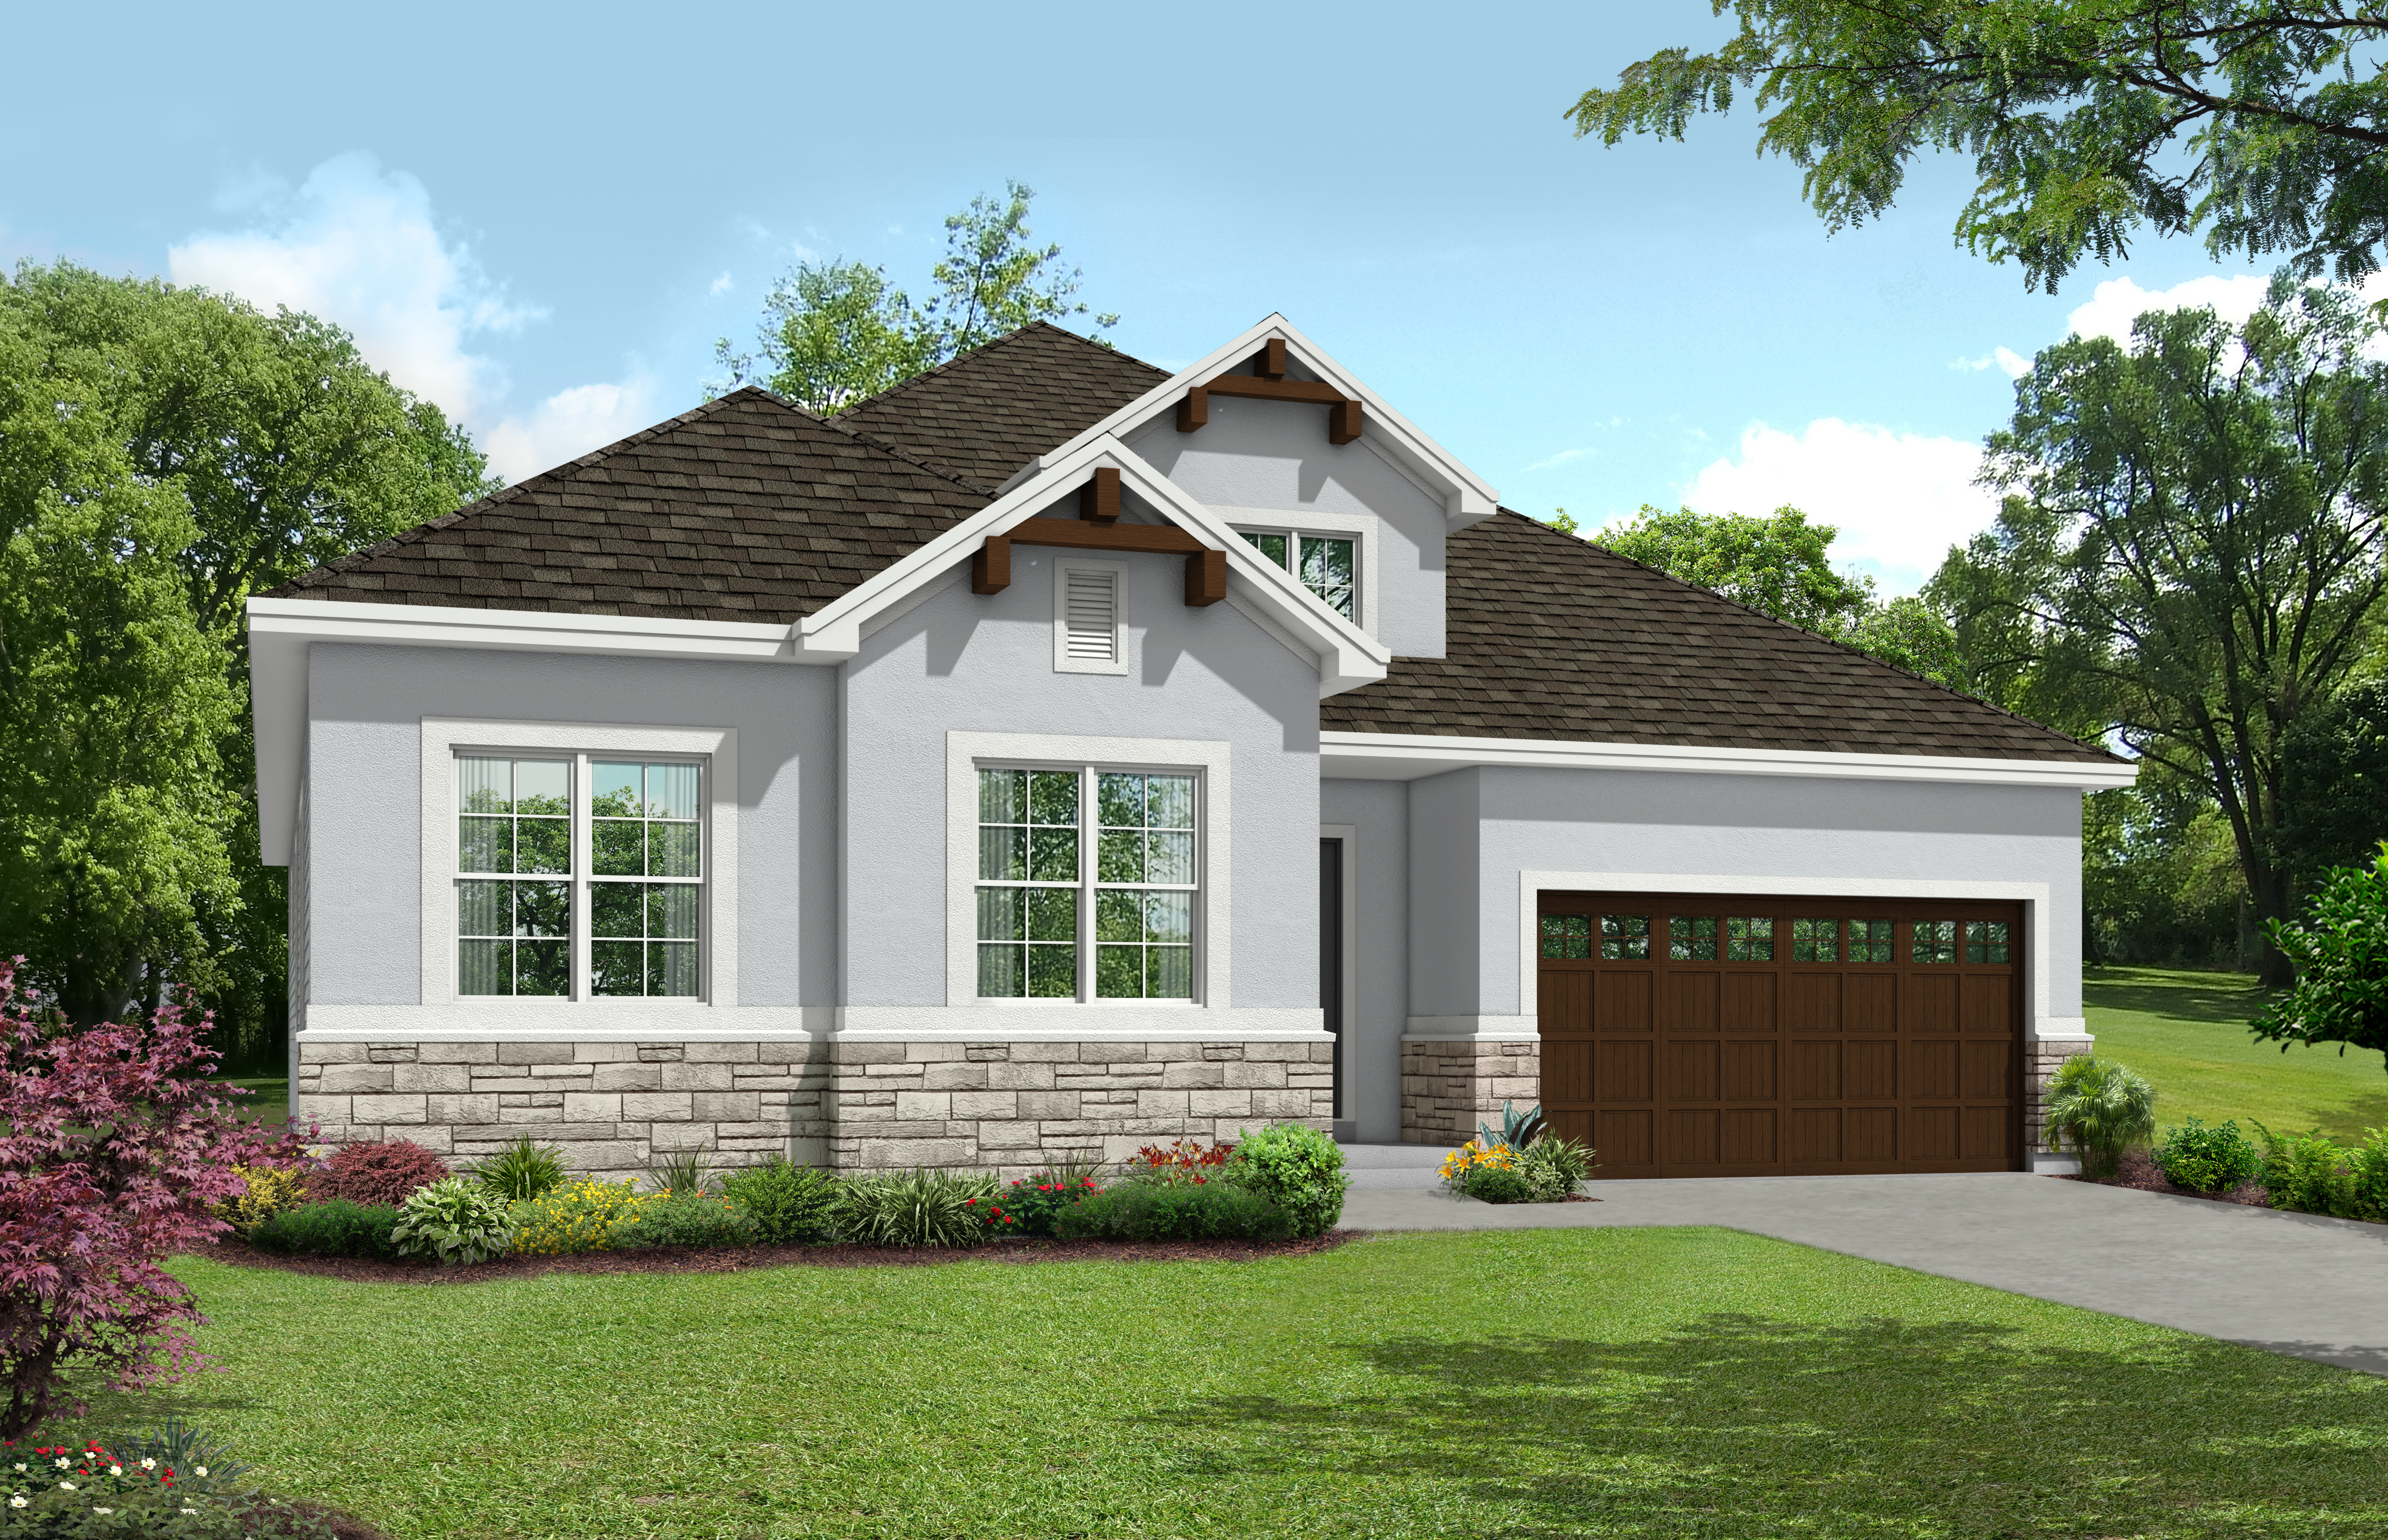 Lc_homes-the_ridge_at_mariana_butte_mickelson_a_02